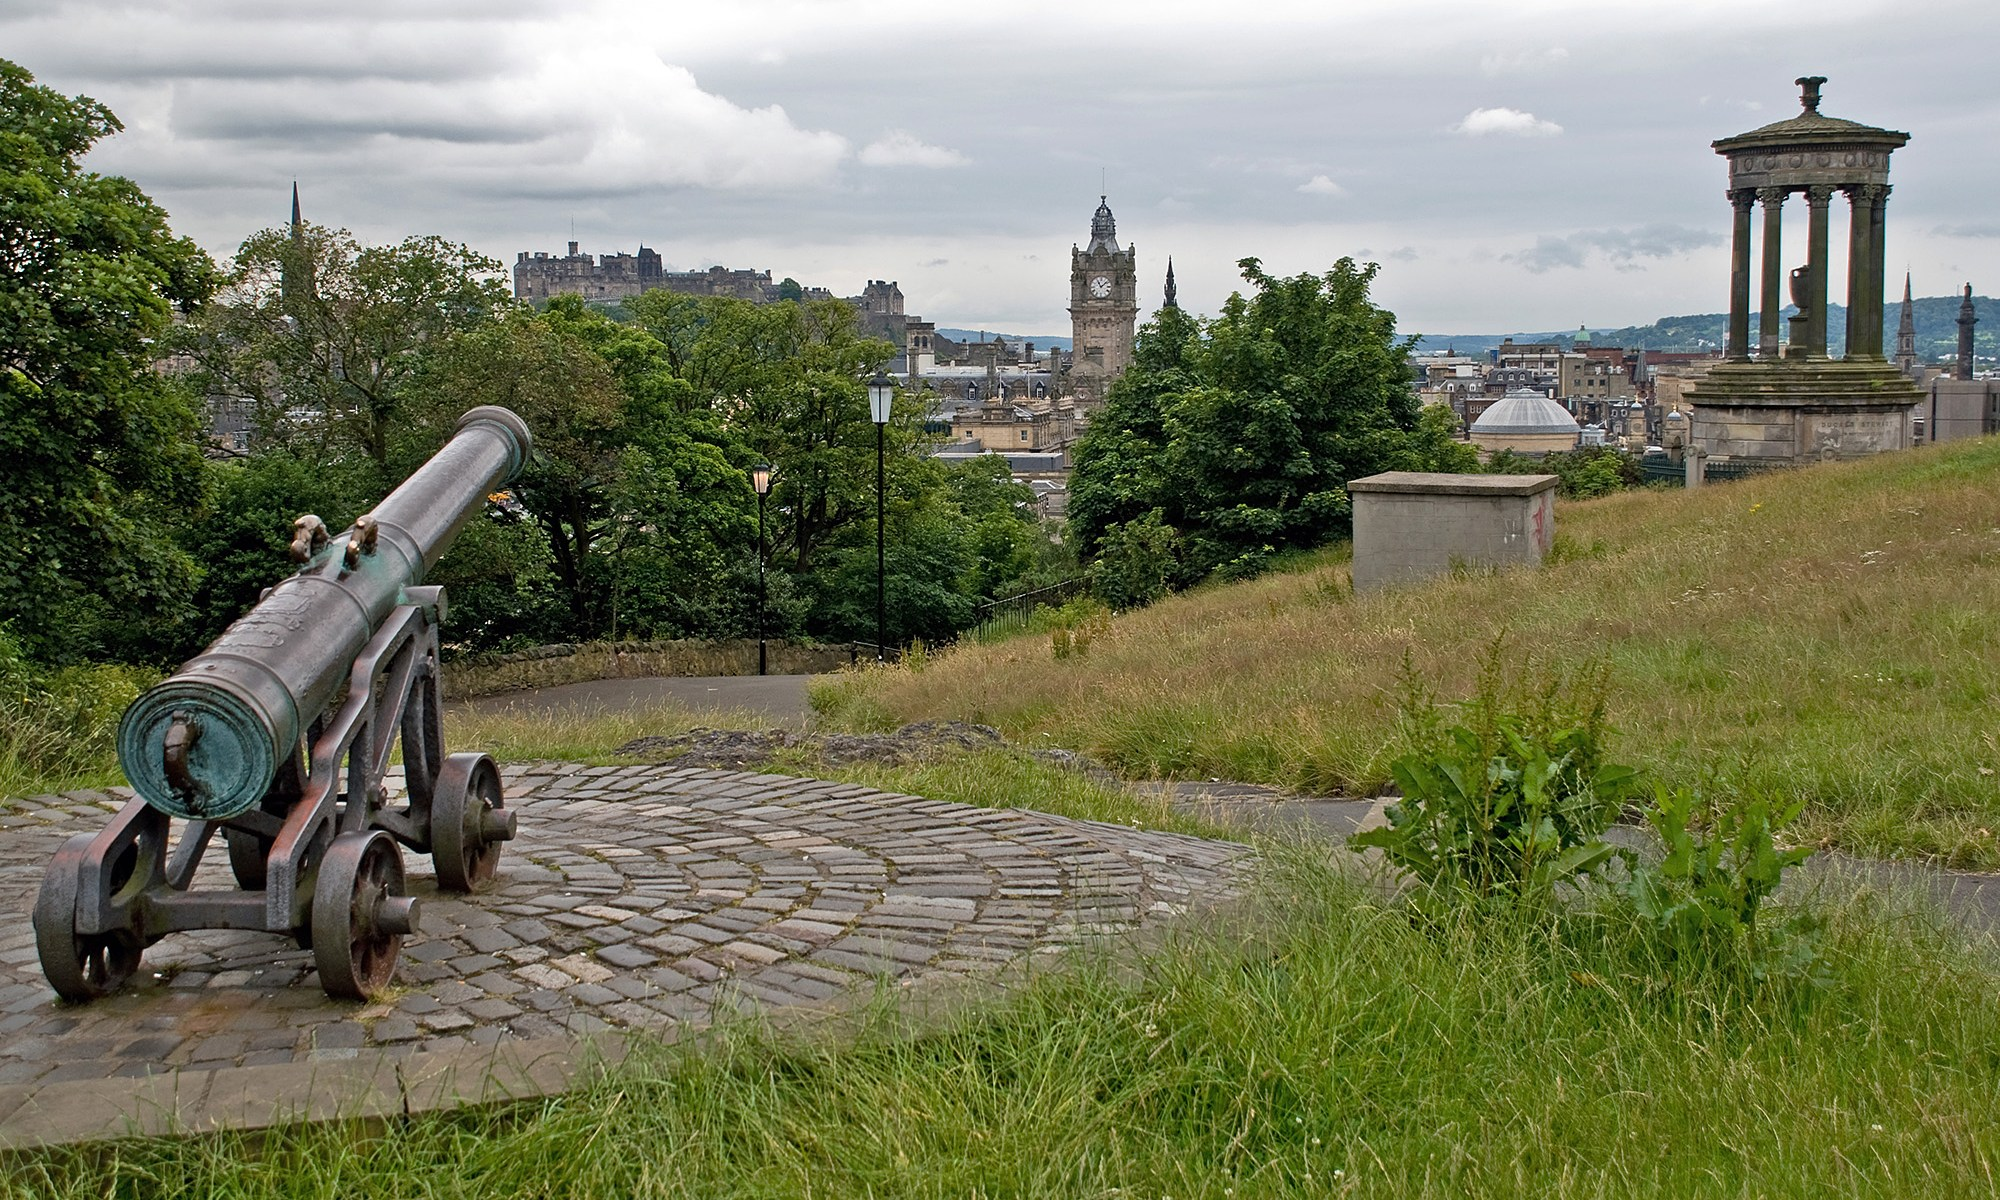 Calton Hill Cannon and Monument, Edinburgh